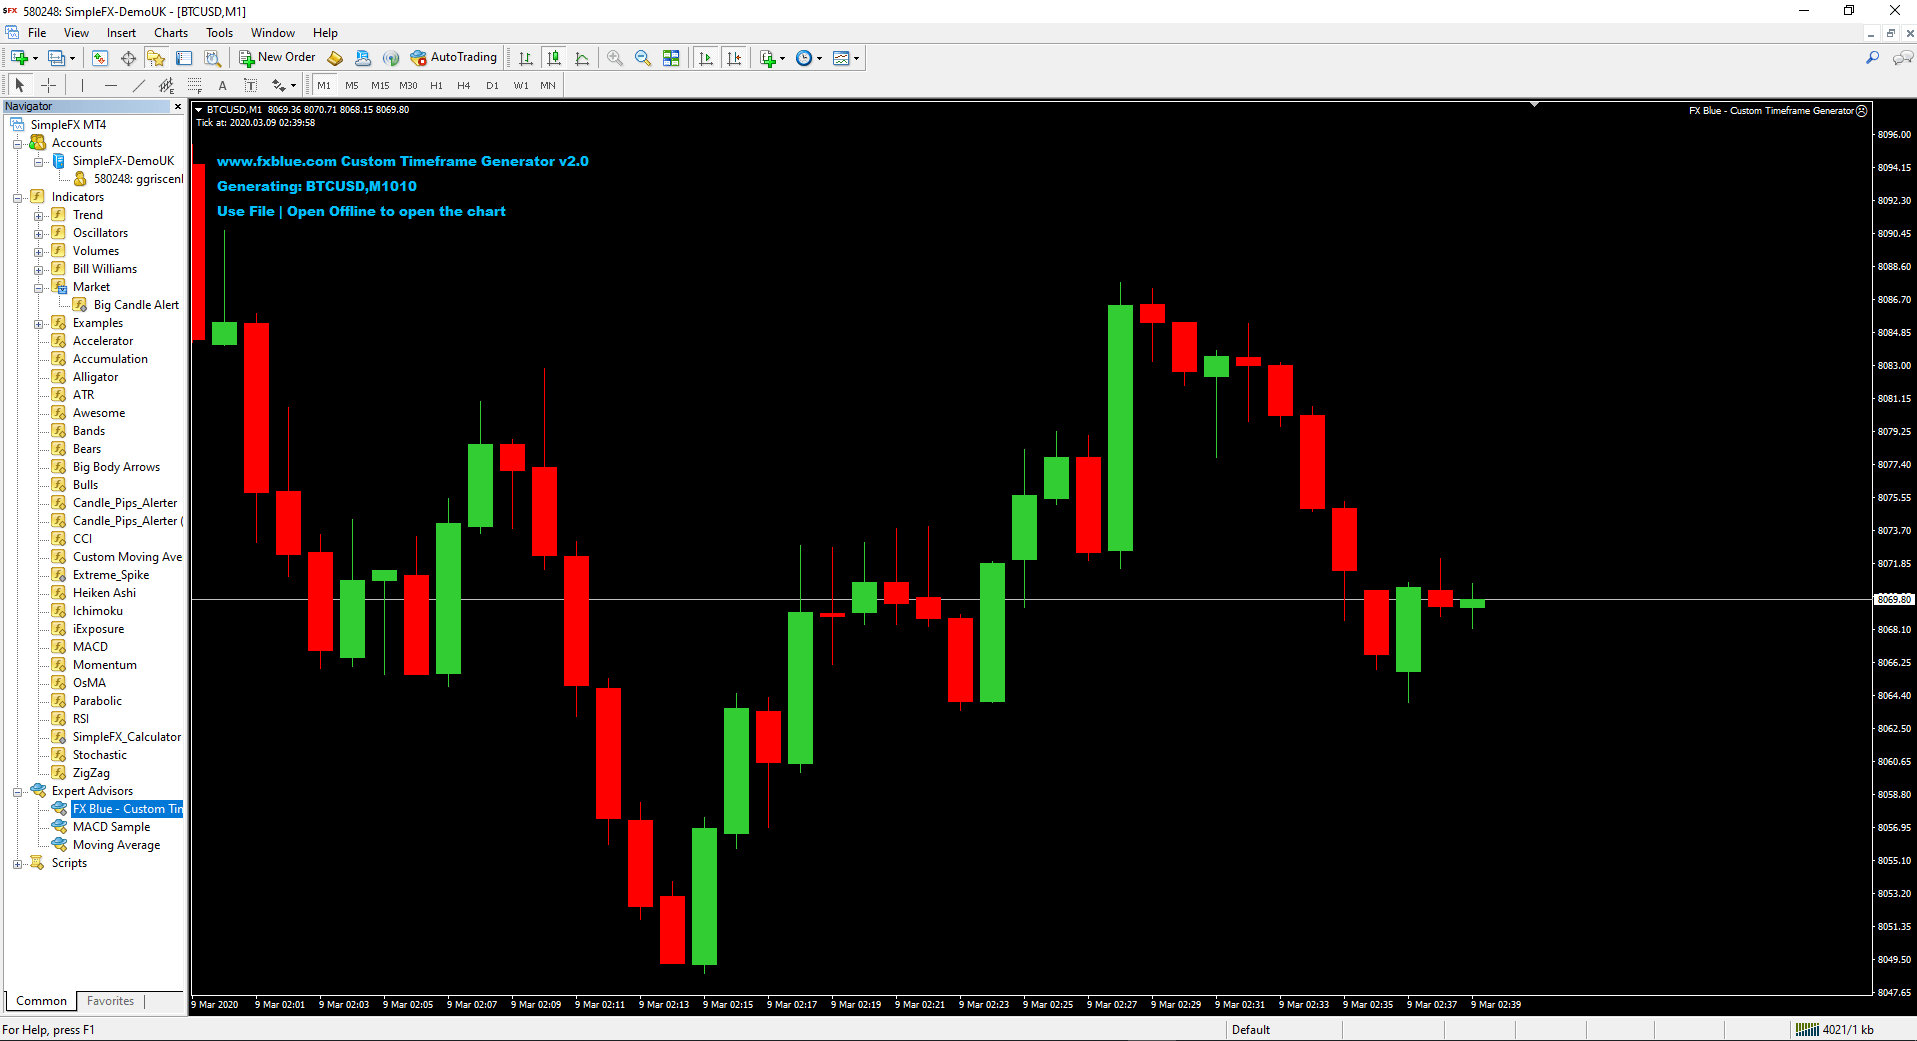 Metatrader after installing the FX indicator